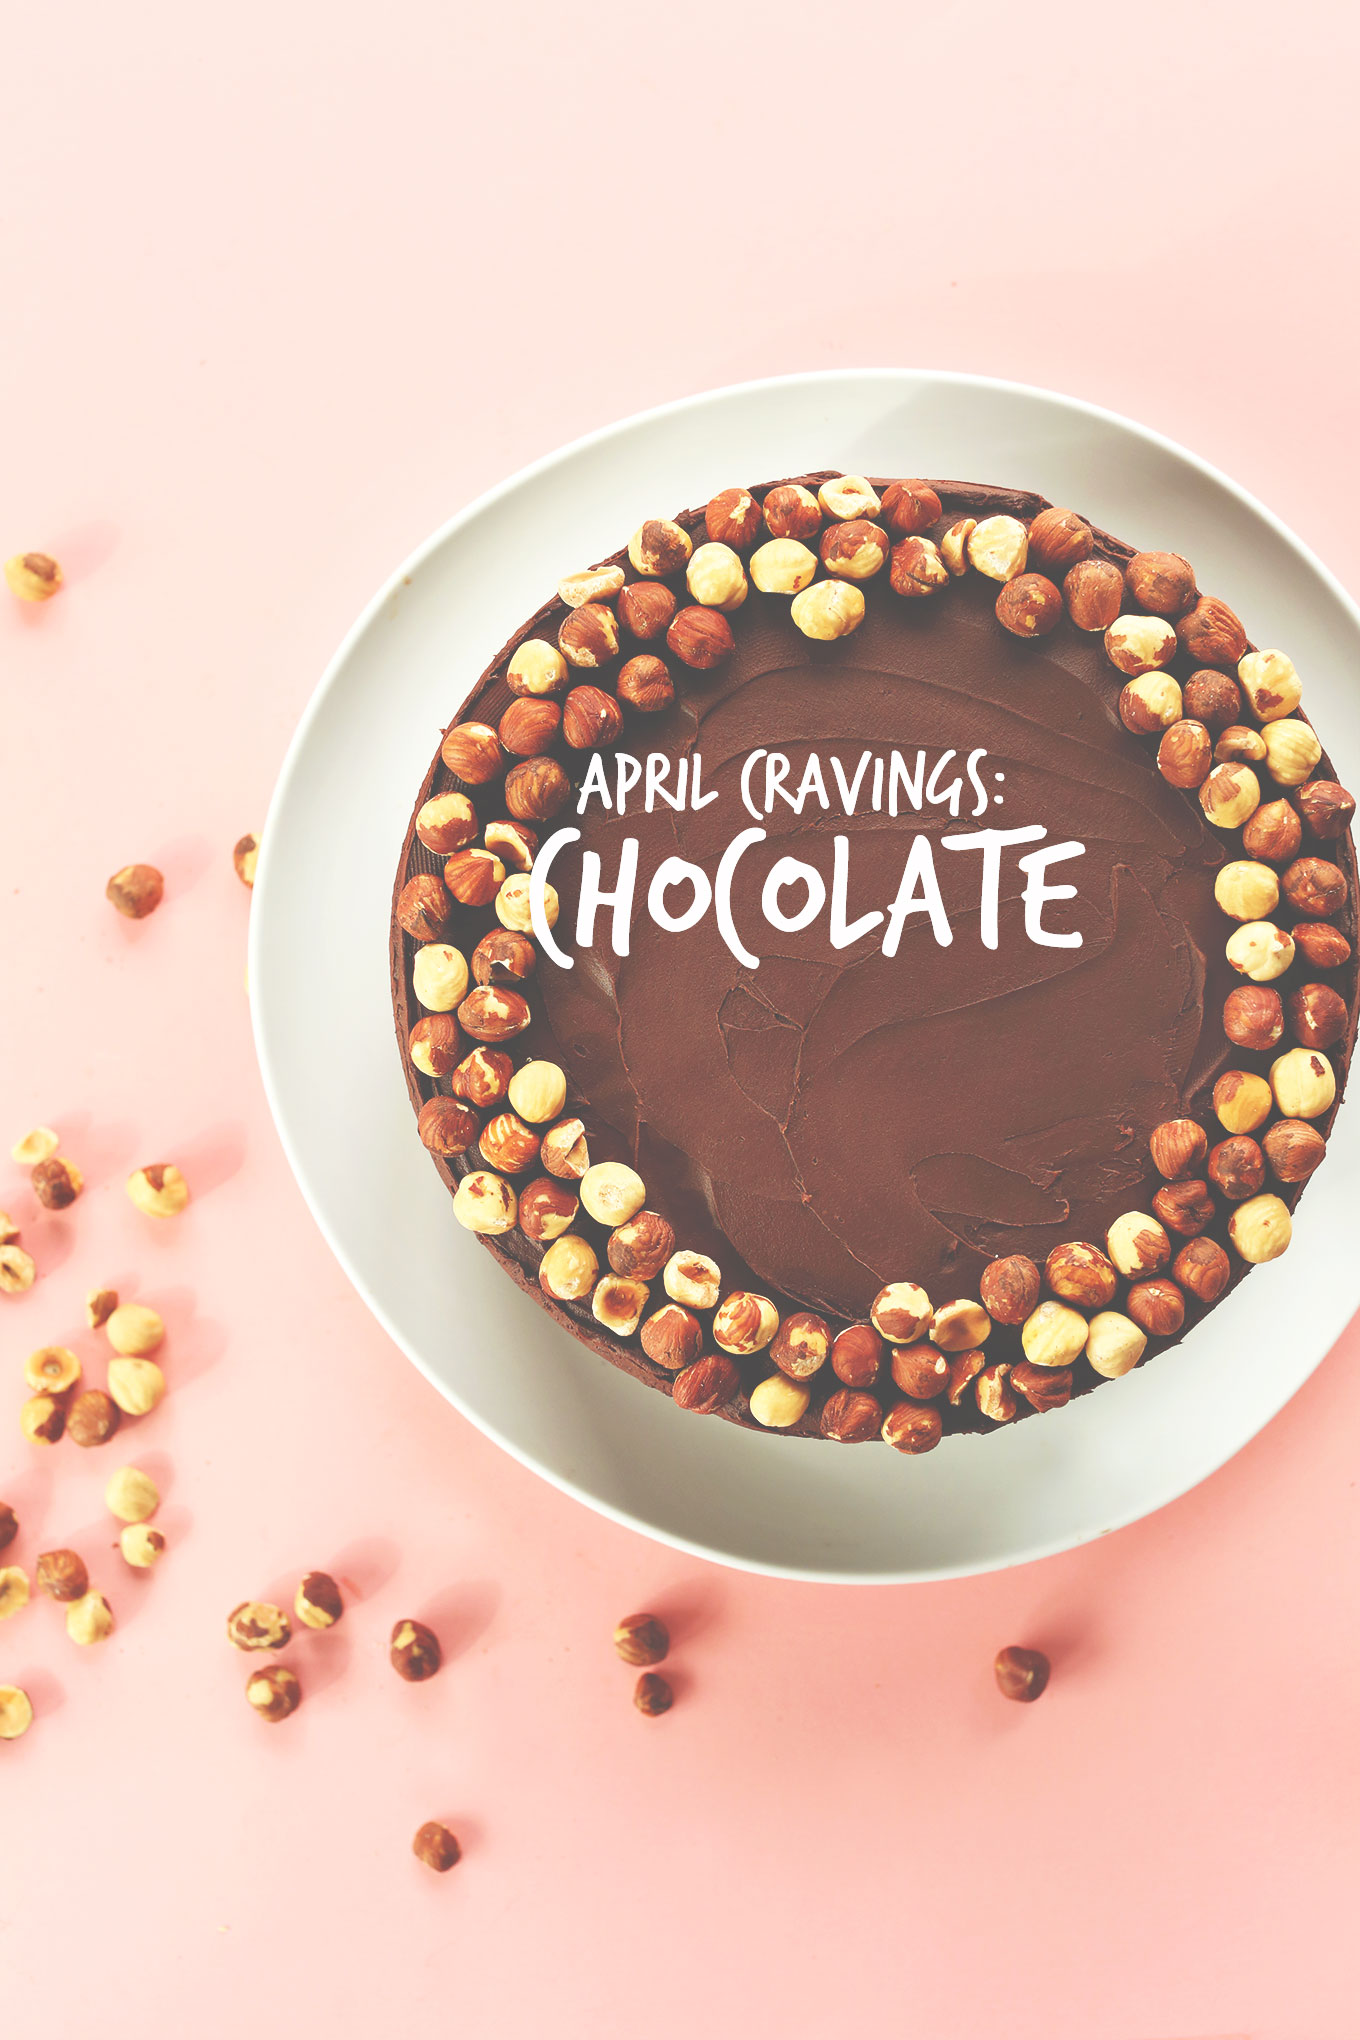 Chocolate Hazelnut Cake to represent our April Craving